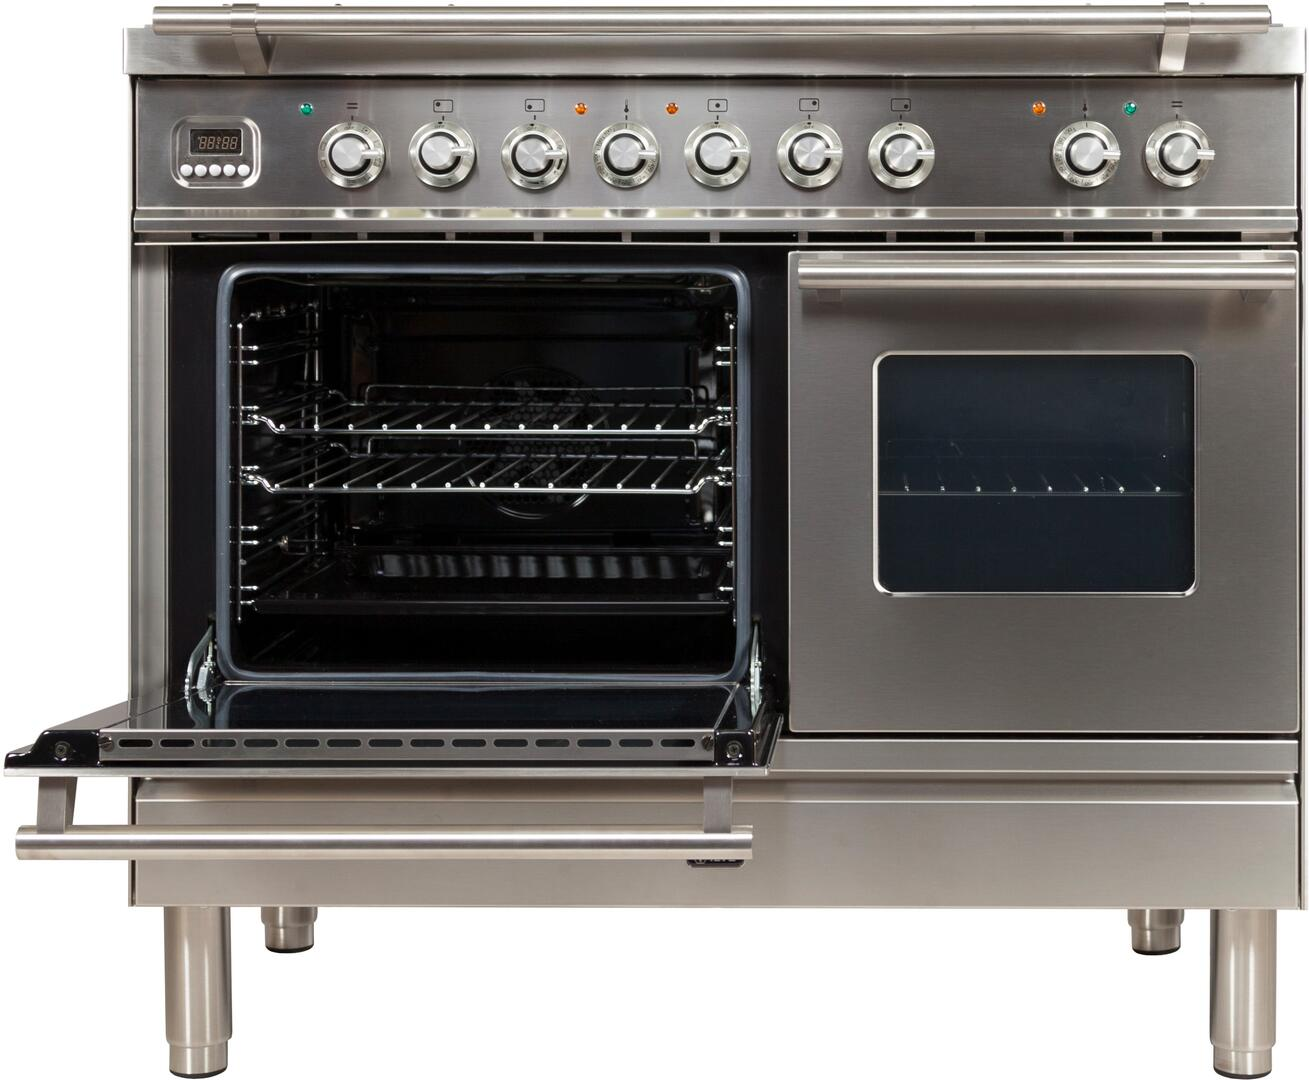 Ilve Professional Plus UPDW100FDMPI Freestanding Dual Fuel Range Stainless Steel, UPDW100FDMPI Main Oven Door Opened